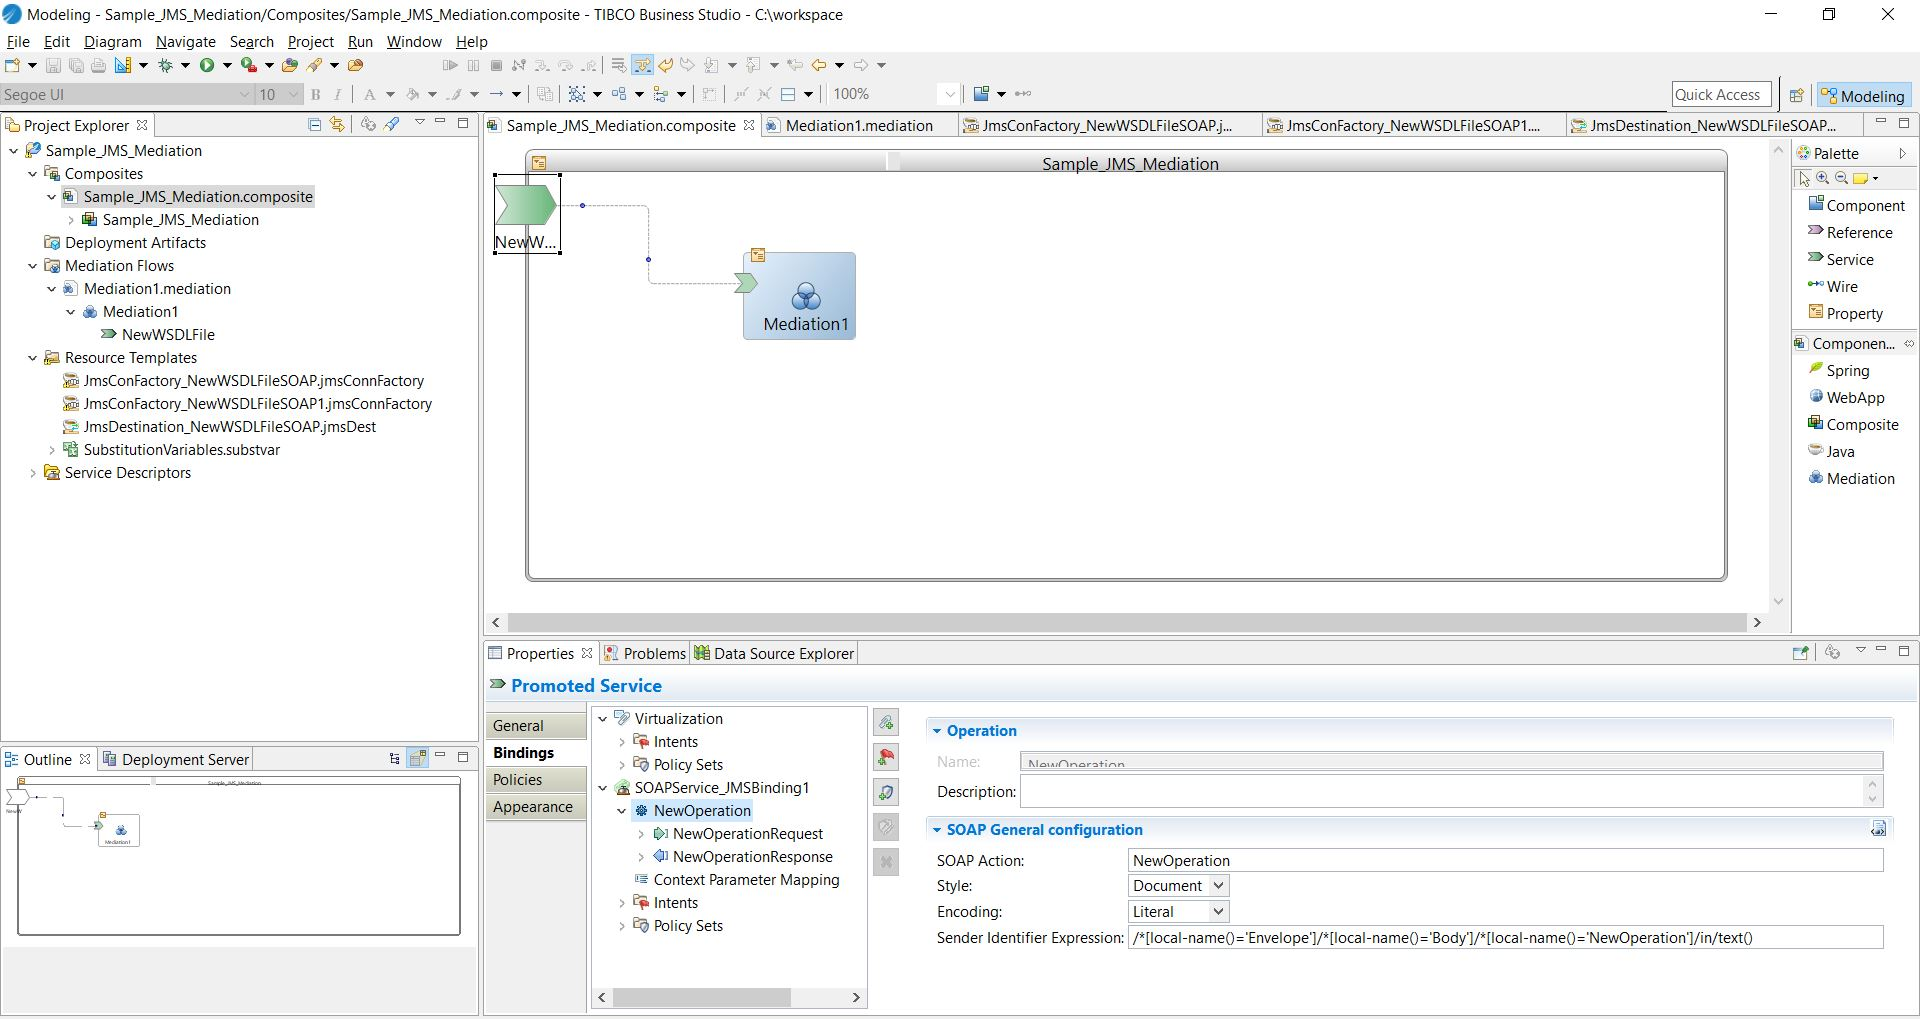 Configuring the Sender Identifier Expression from TIBCO ActiveMatrix ...